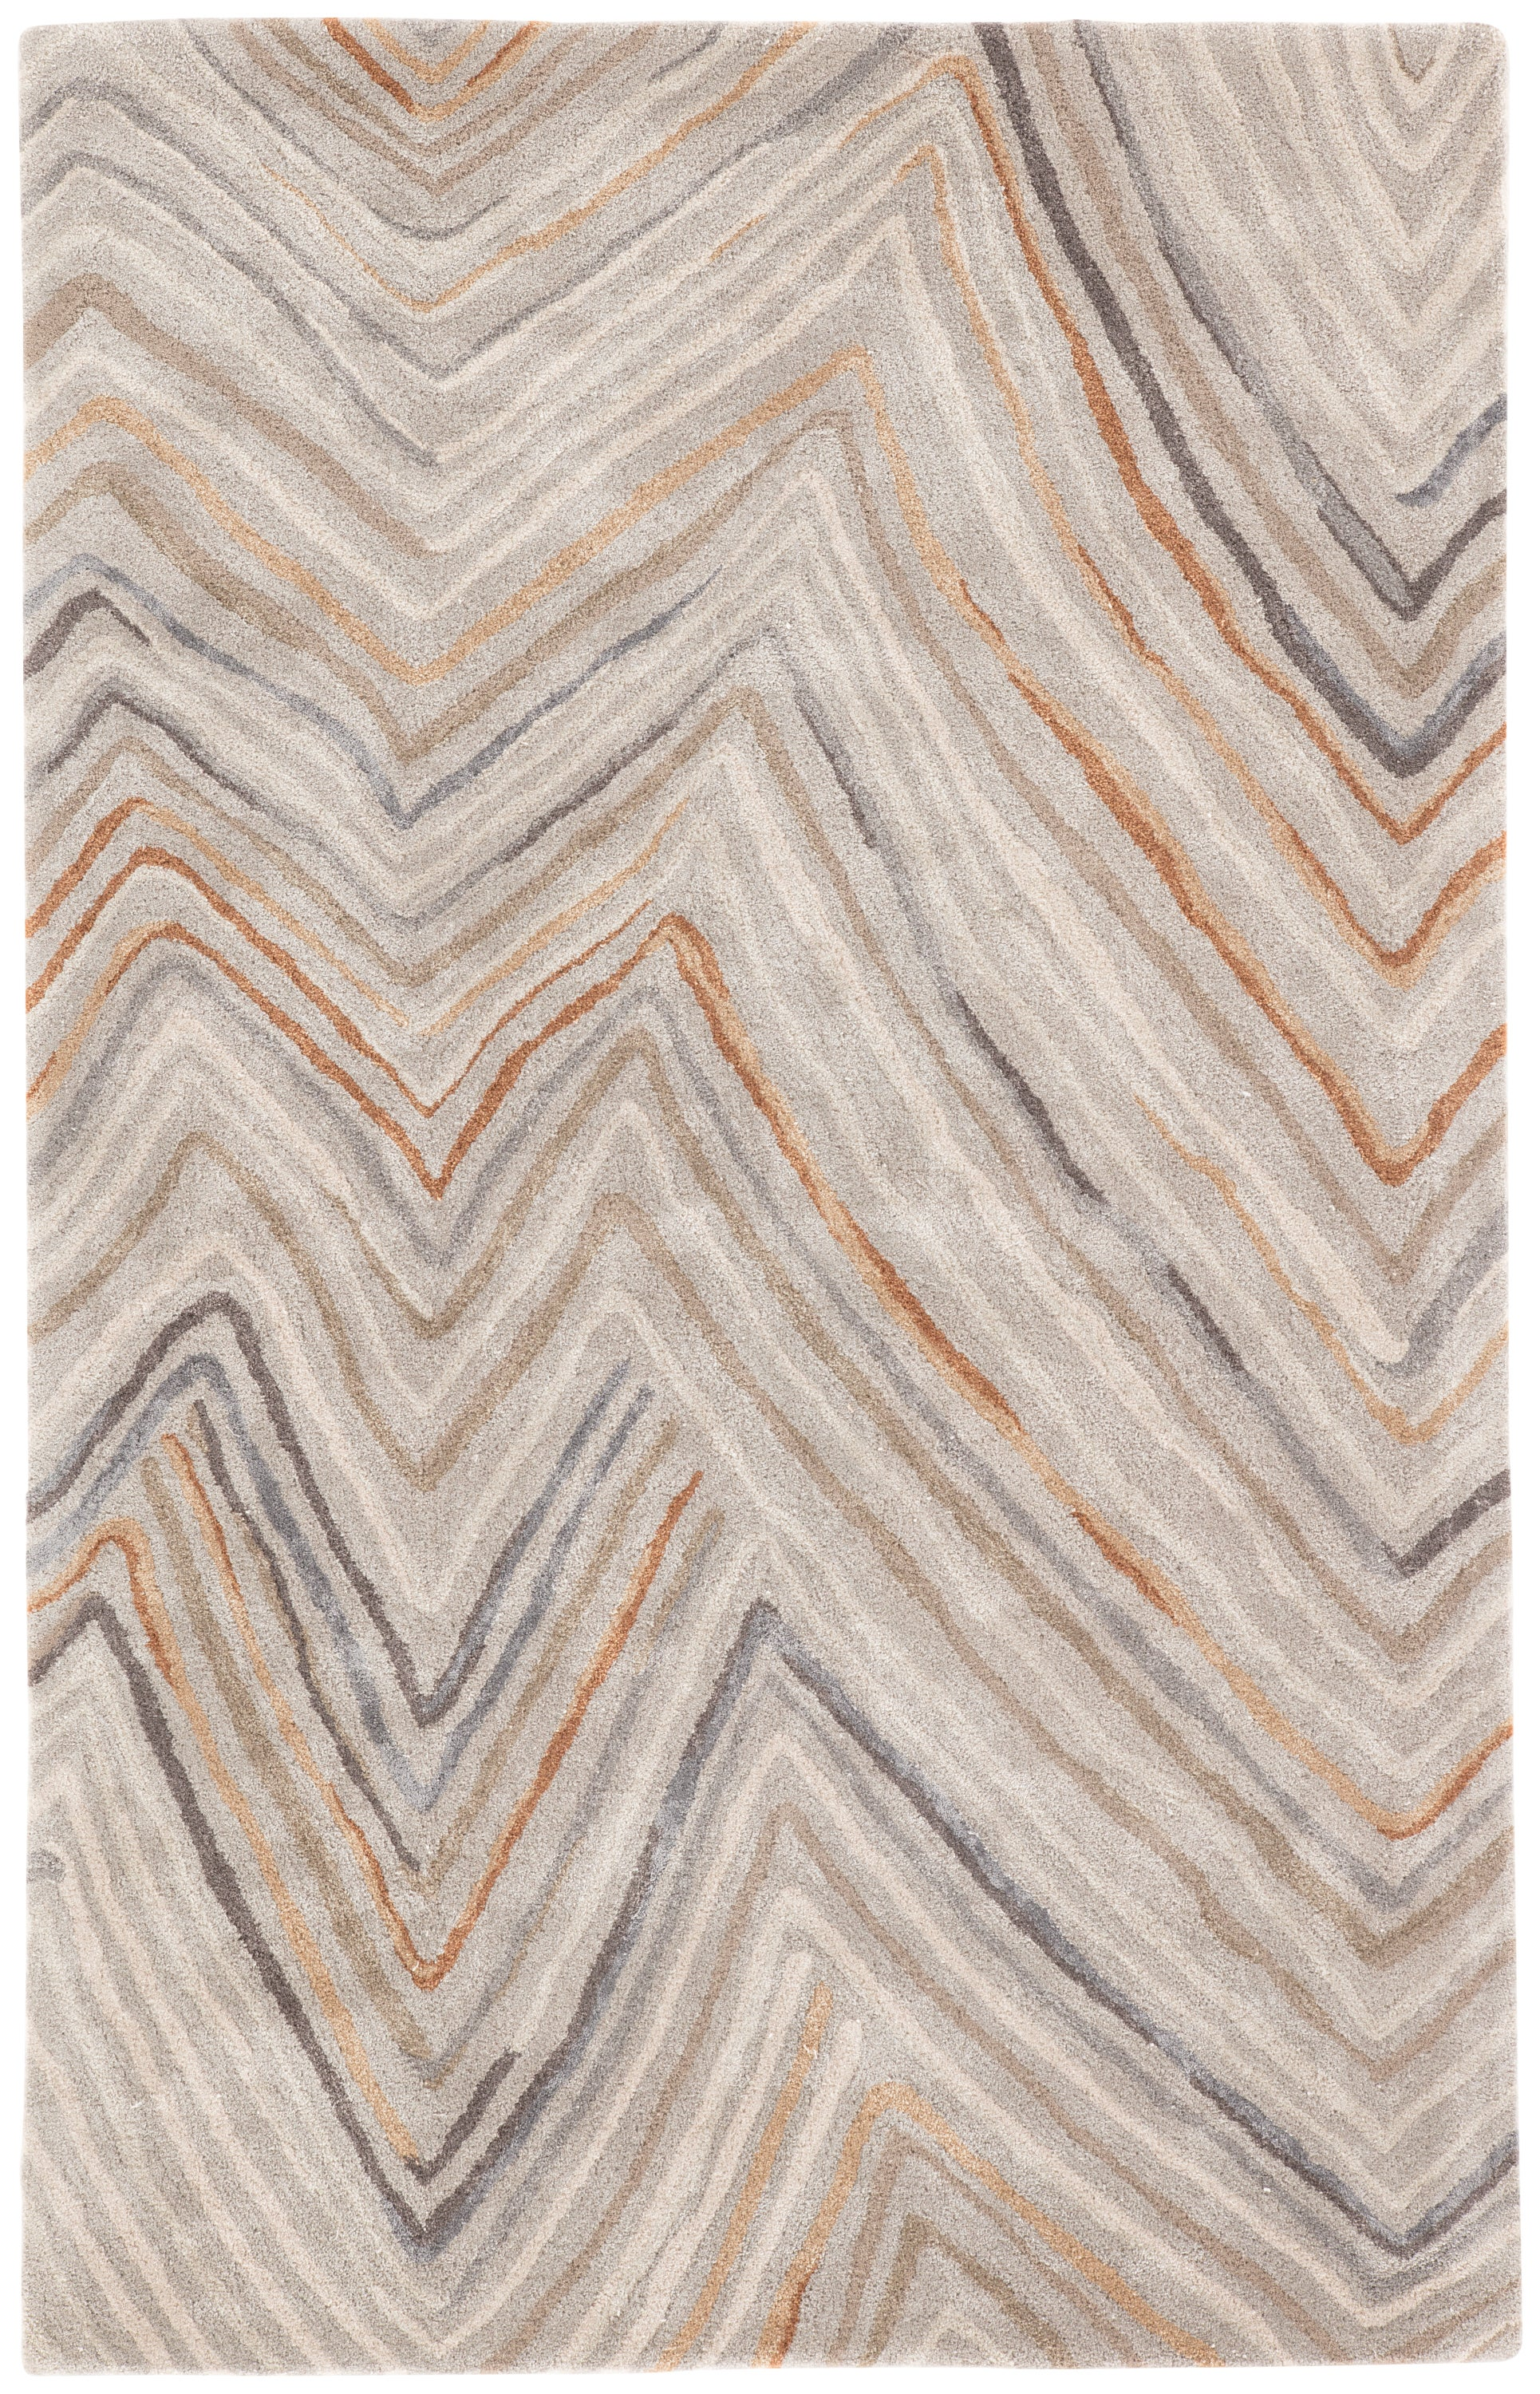 Rectangle 5x8 Orange Chevron Hand Tufted Blends Modern recommended for Bedroom, Bathroom, Dining Room, Office, Hallway, Living Room